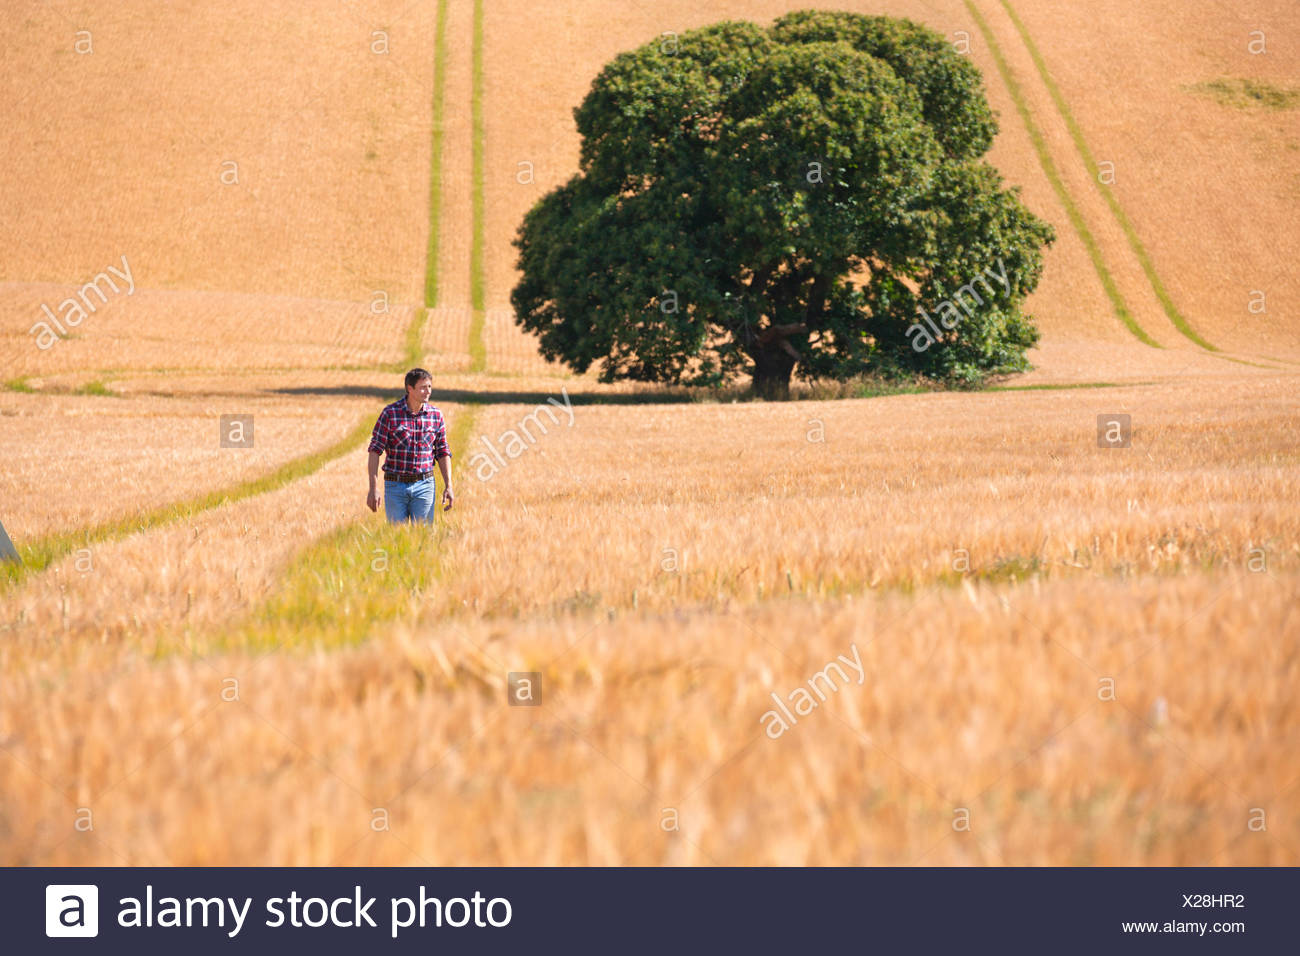 Farmer walking in rural crop field orge ensoleillée en été Photo Stock